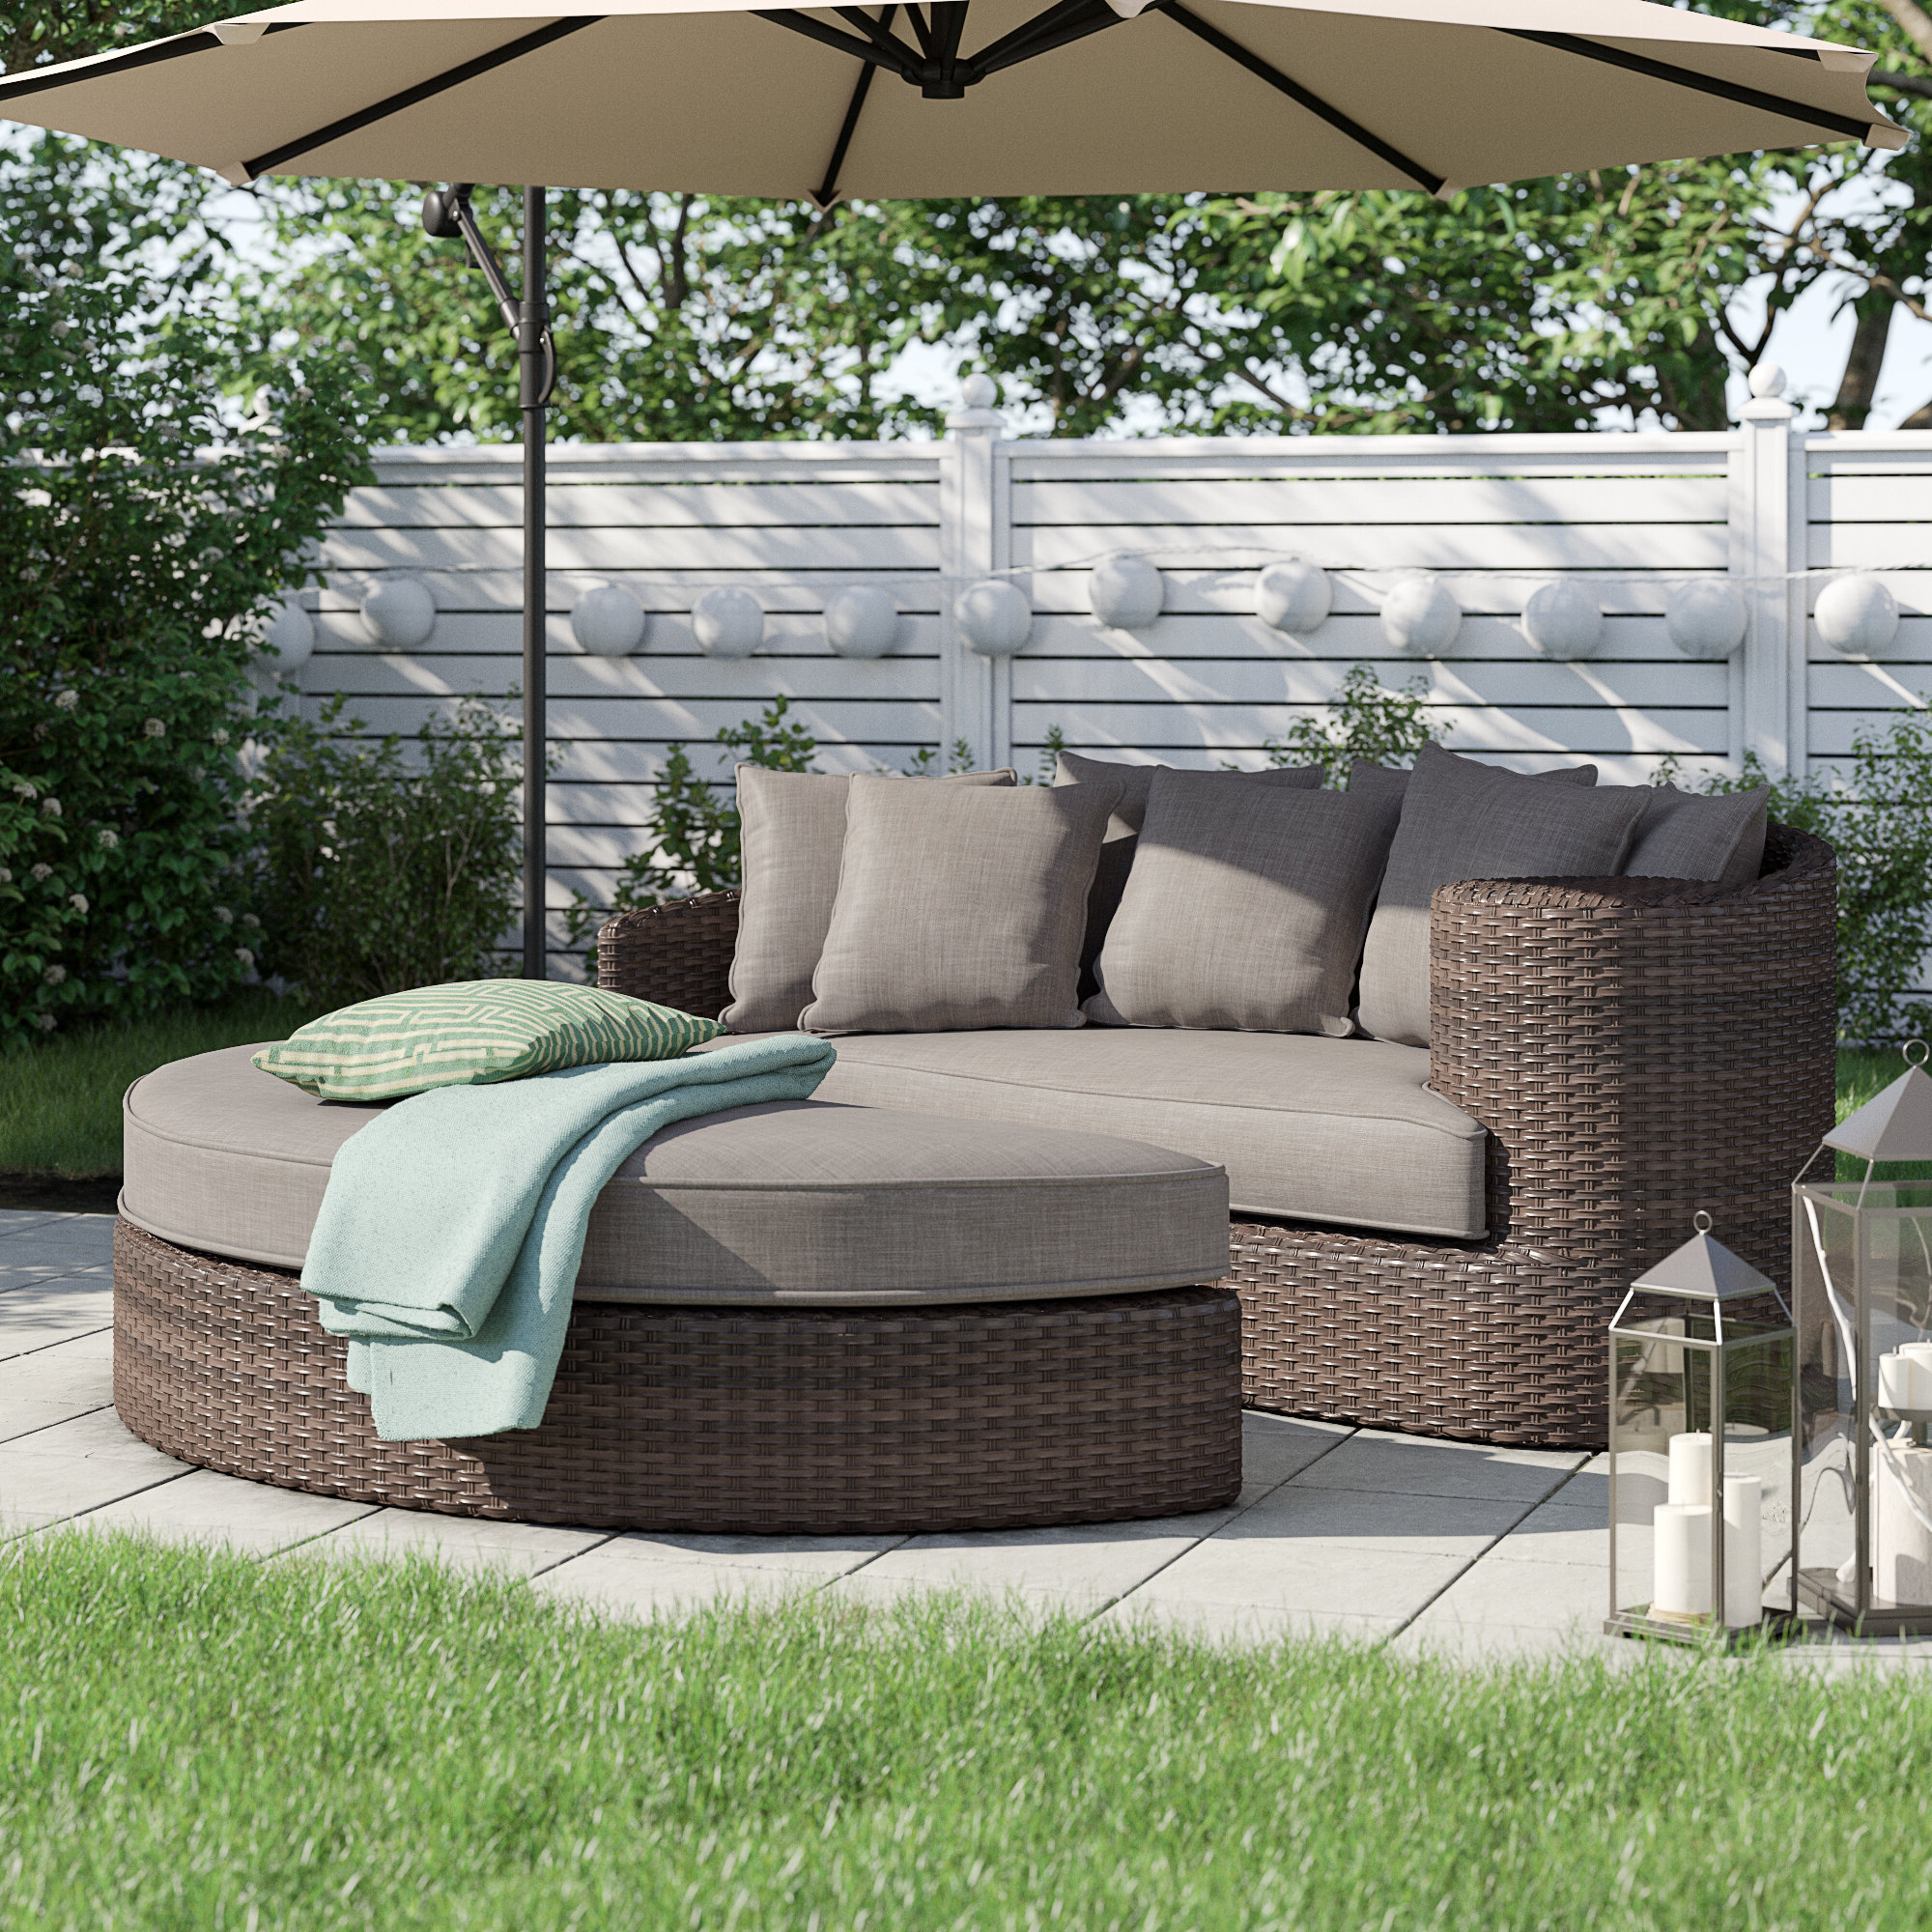 Keiran Patio Daybeds With Cushions Intended For Newest Whyte Contemporary Patio Daybed With Cushions (View 8 of 20)